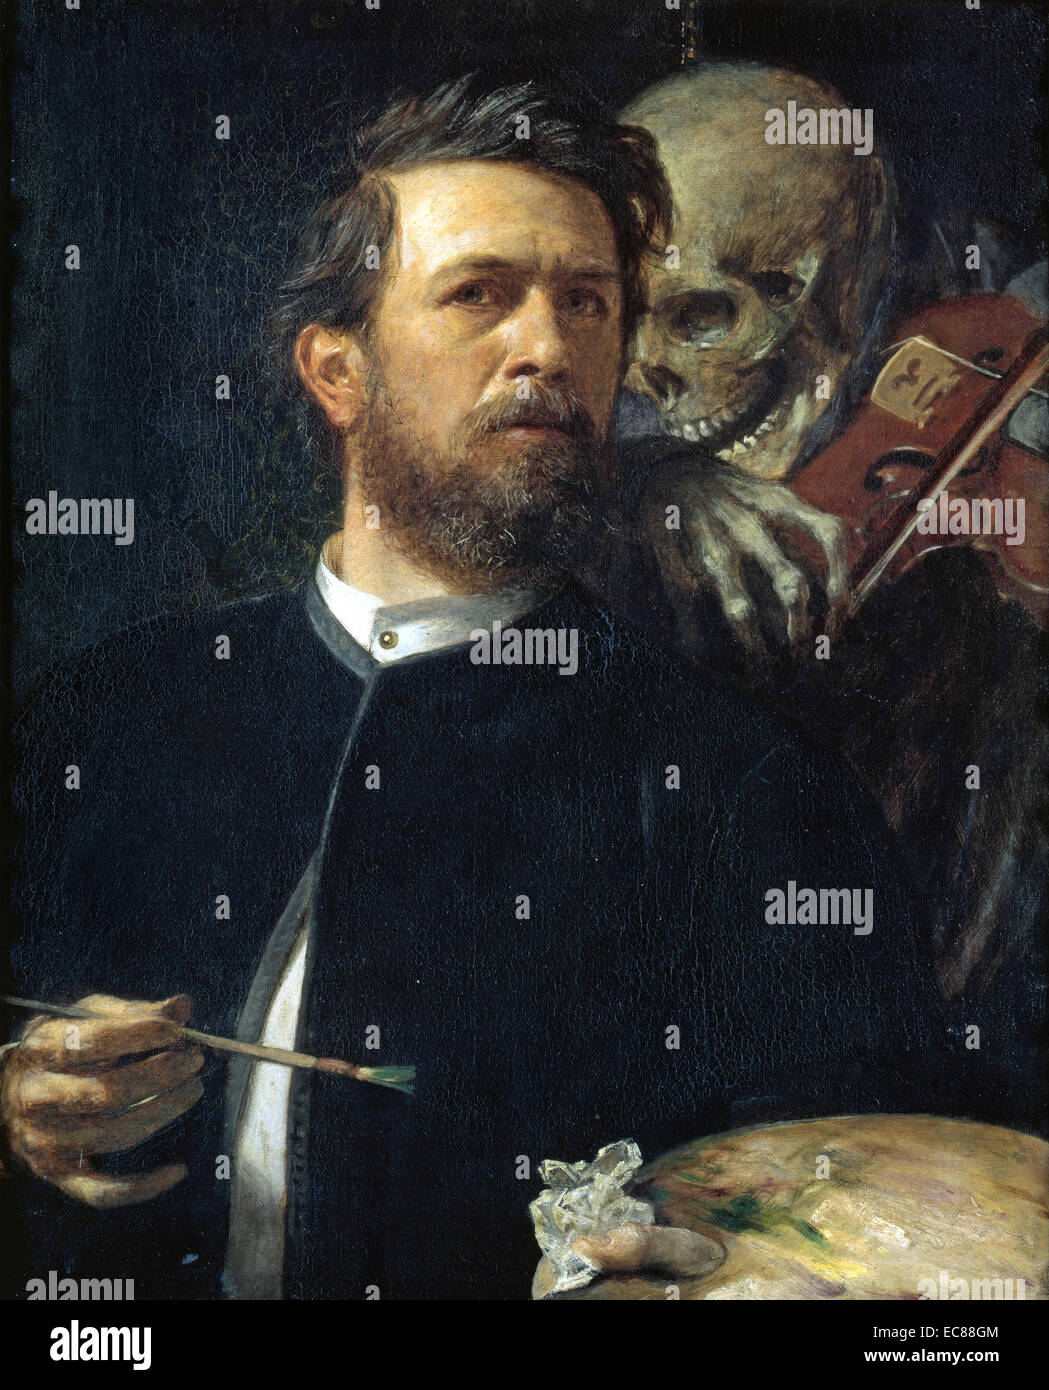 Self portrait by Arnold Böcklin (1827-1901) A Swiss symbolist painter. Dated 1872 - Stock Image